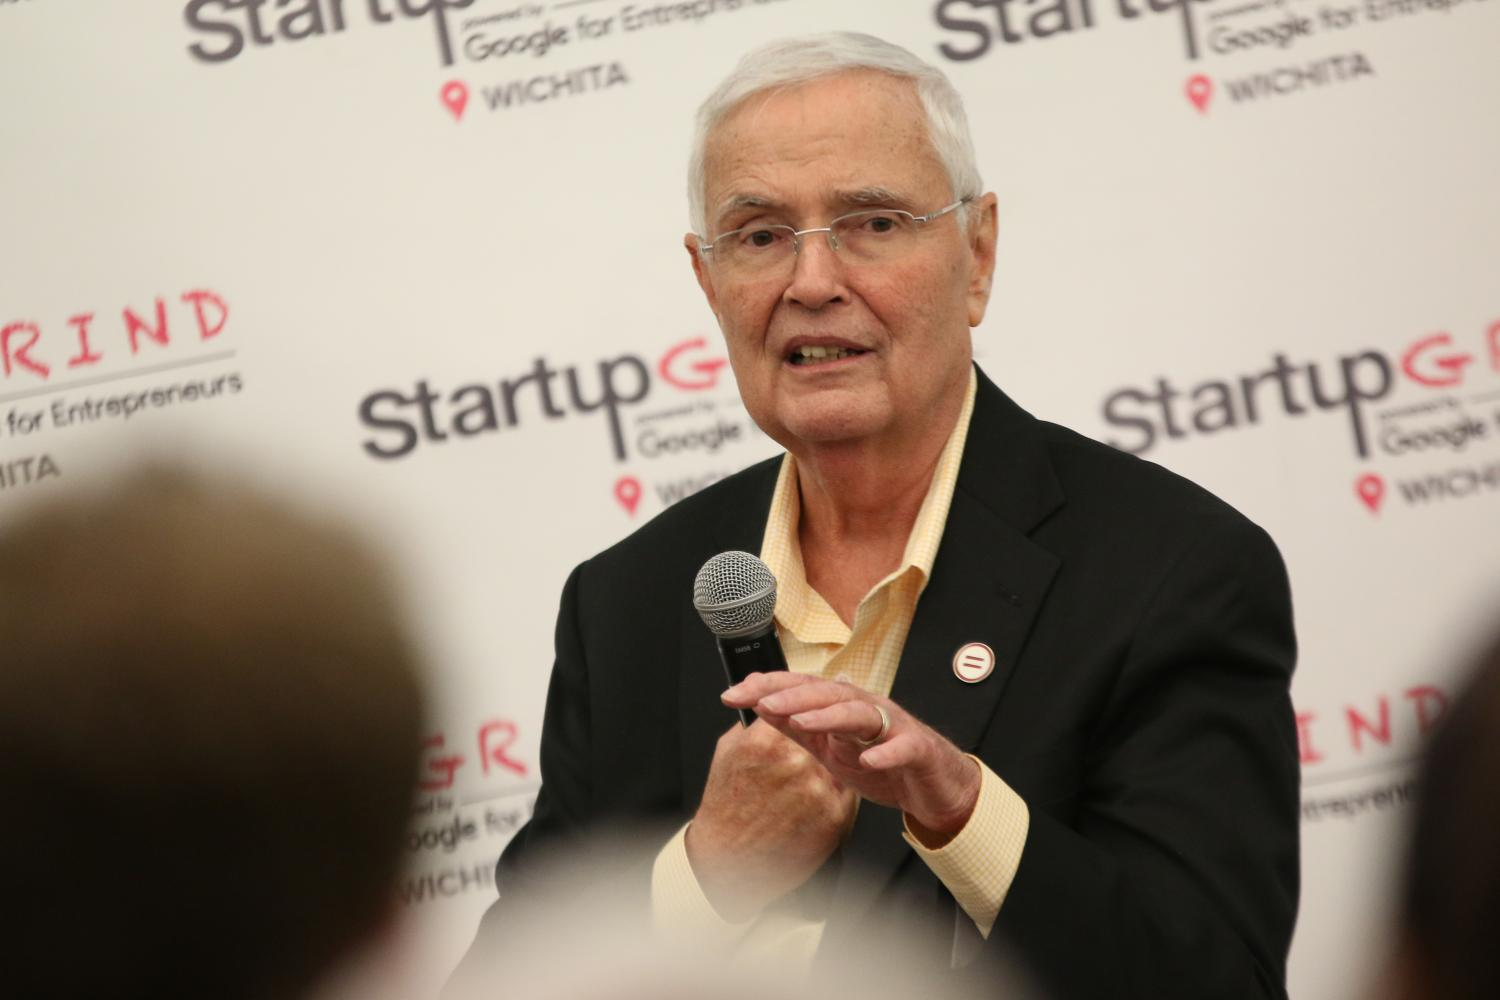 Wichita State President John Bardo, responds to a question during the Startup Grind ICT event held at The Lux in the fall.